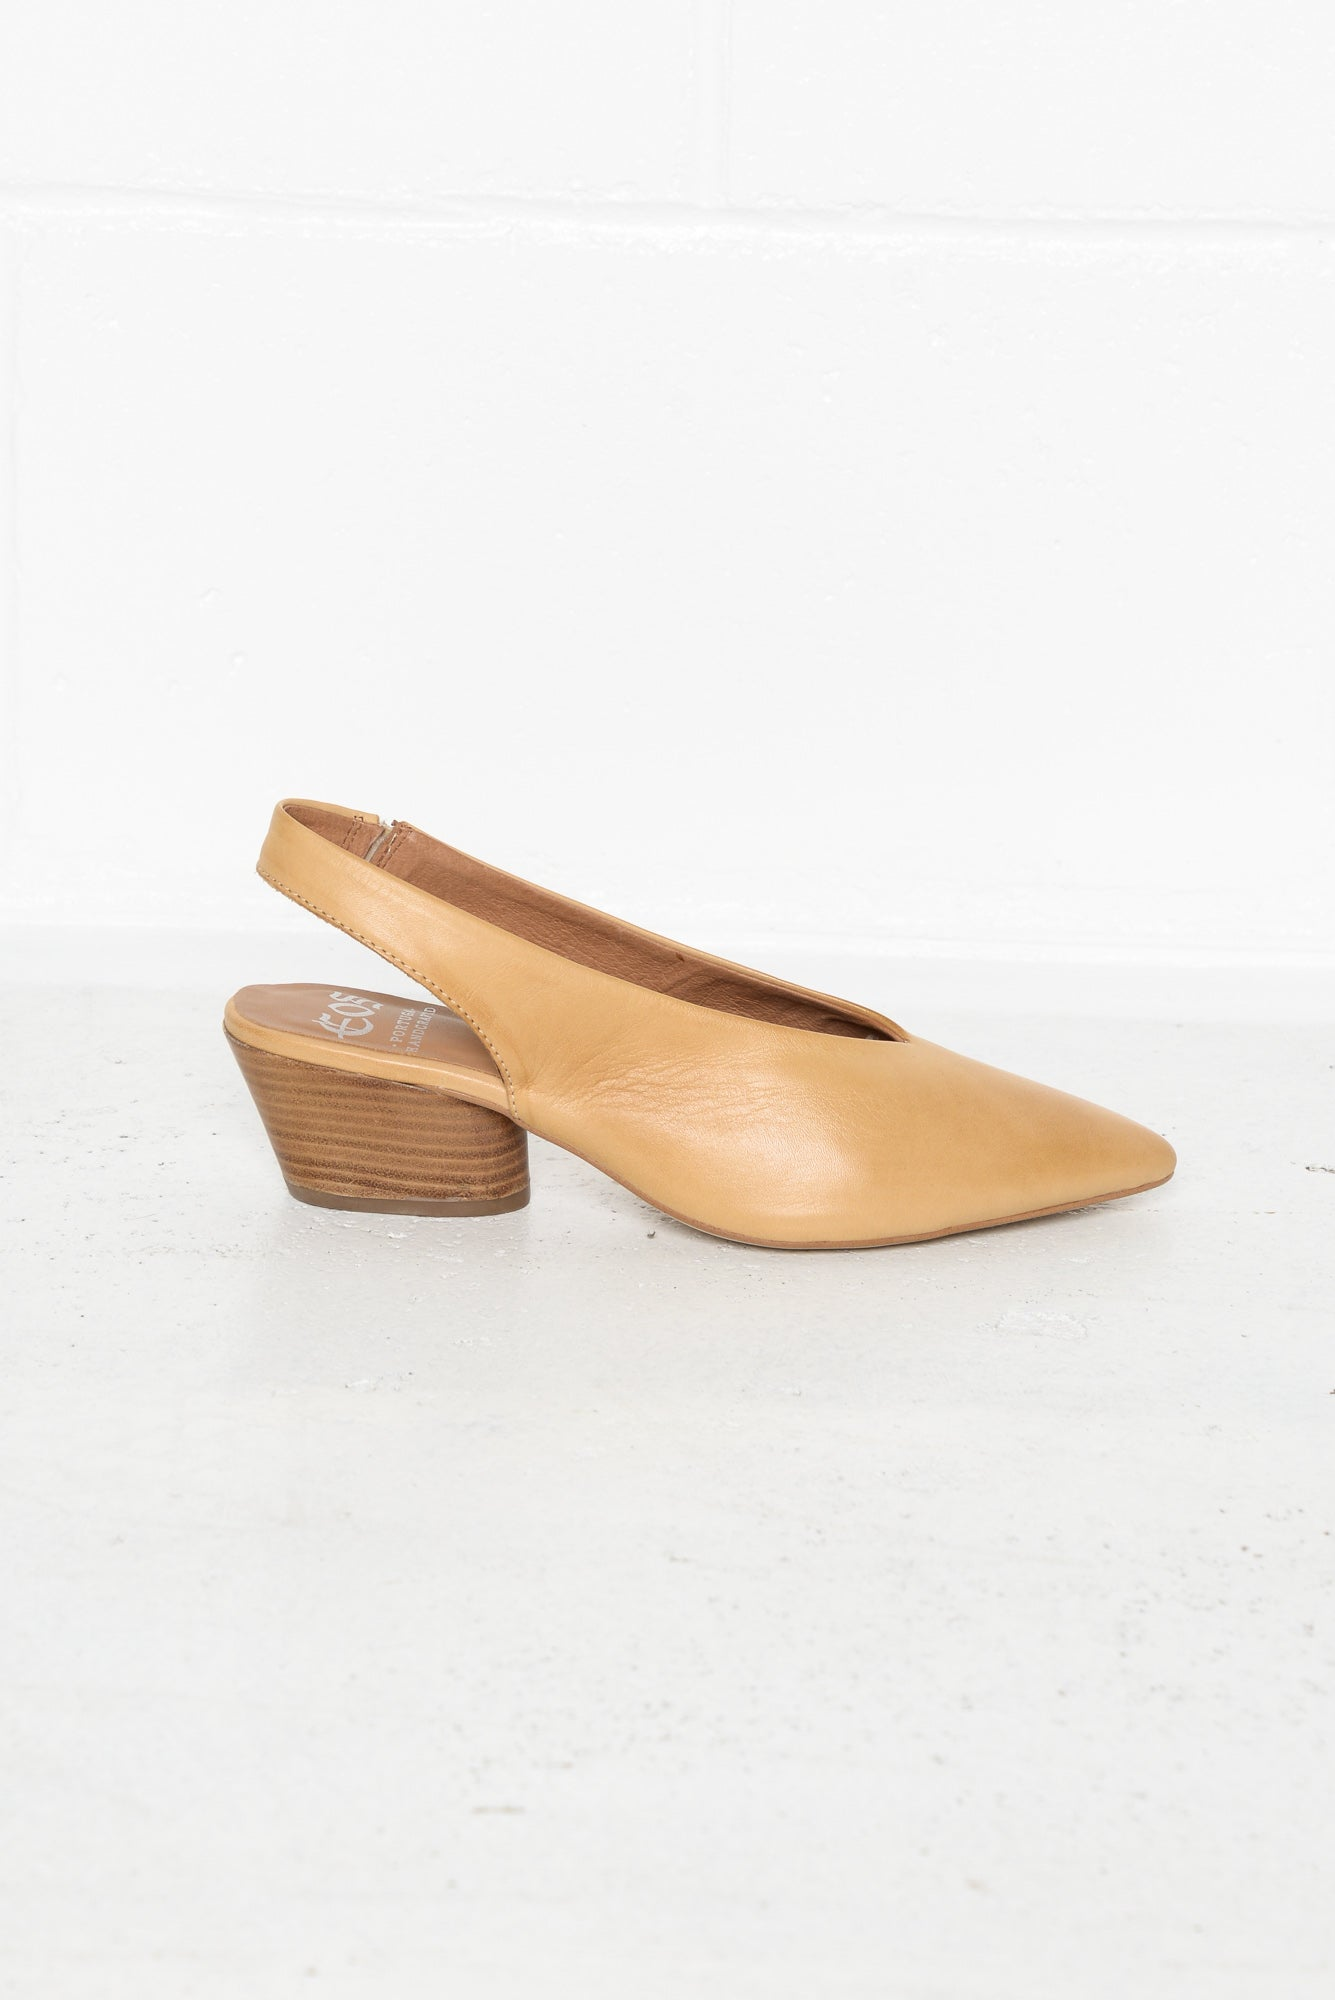 Hattie Tan Leather Slingback